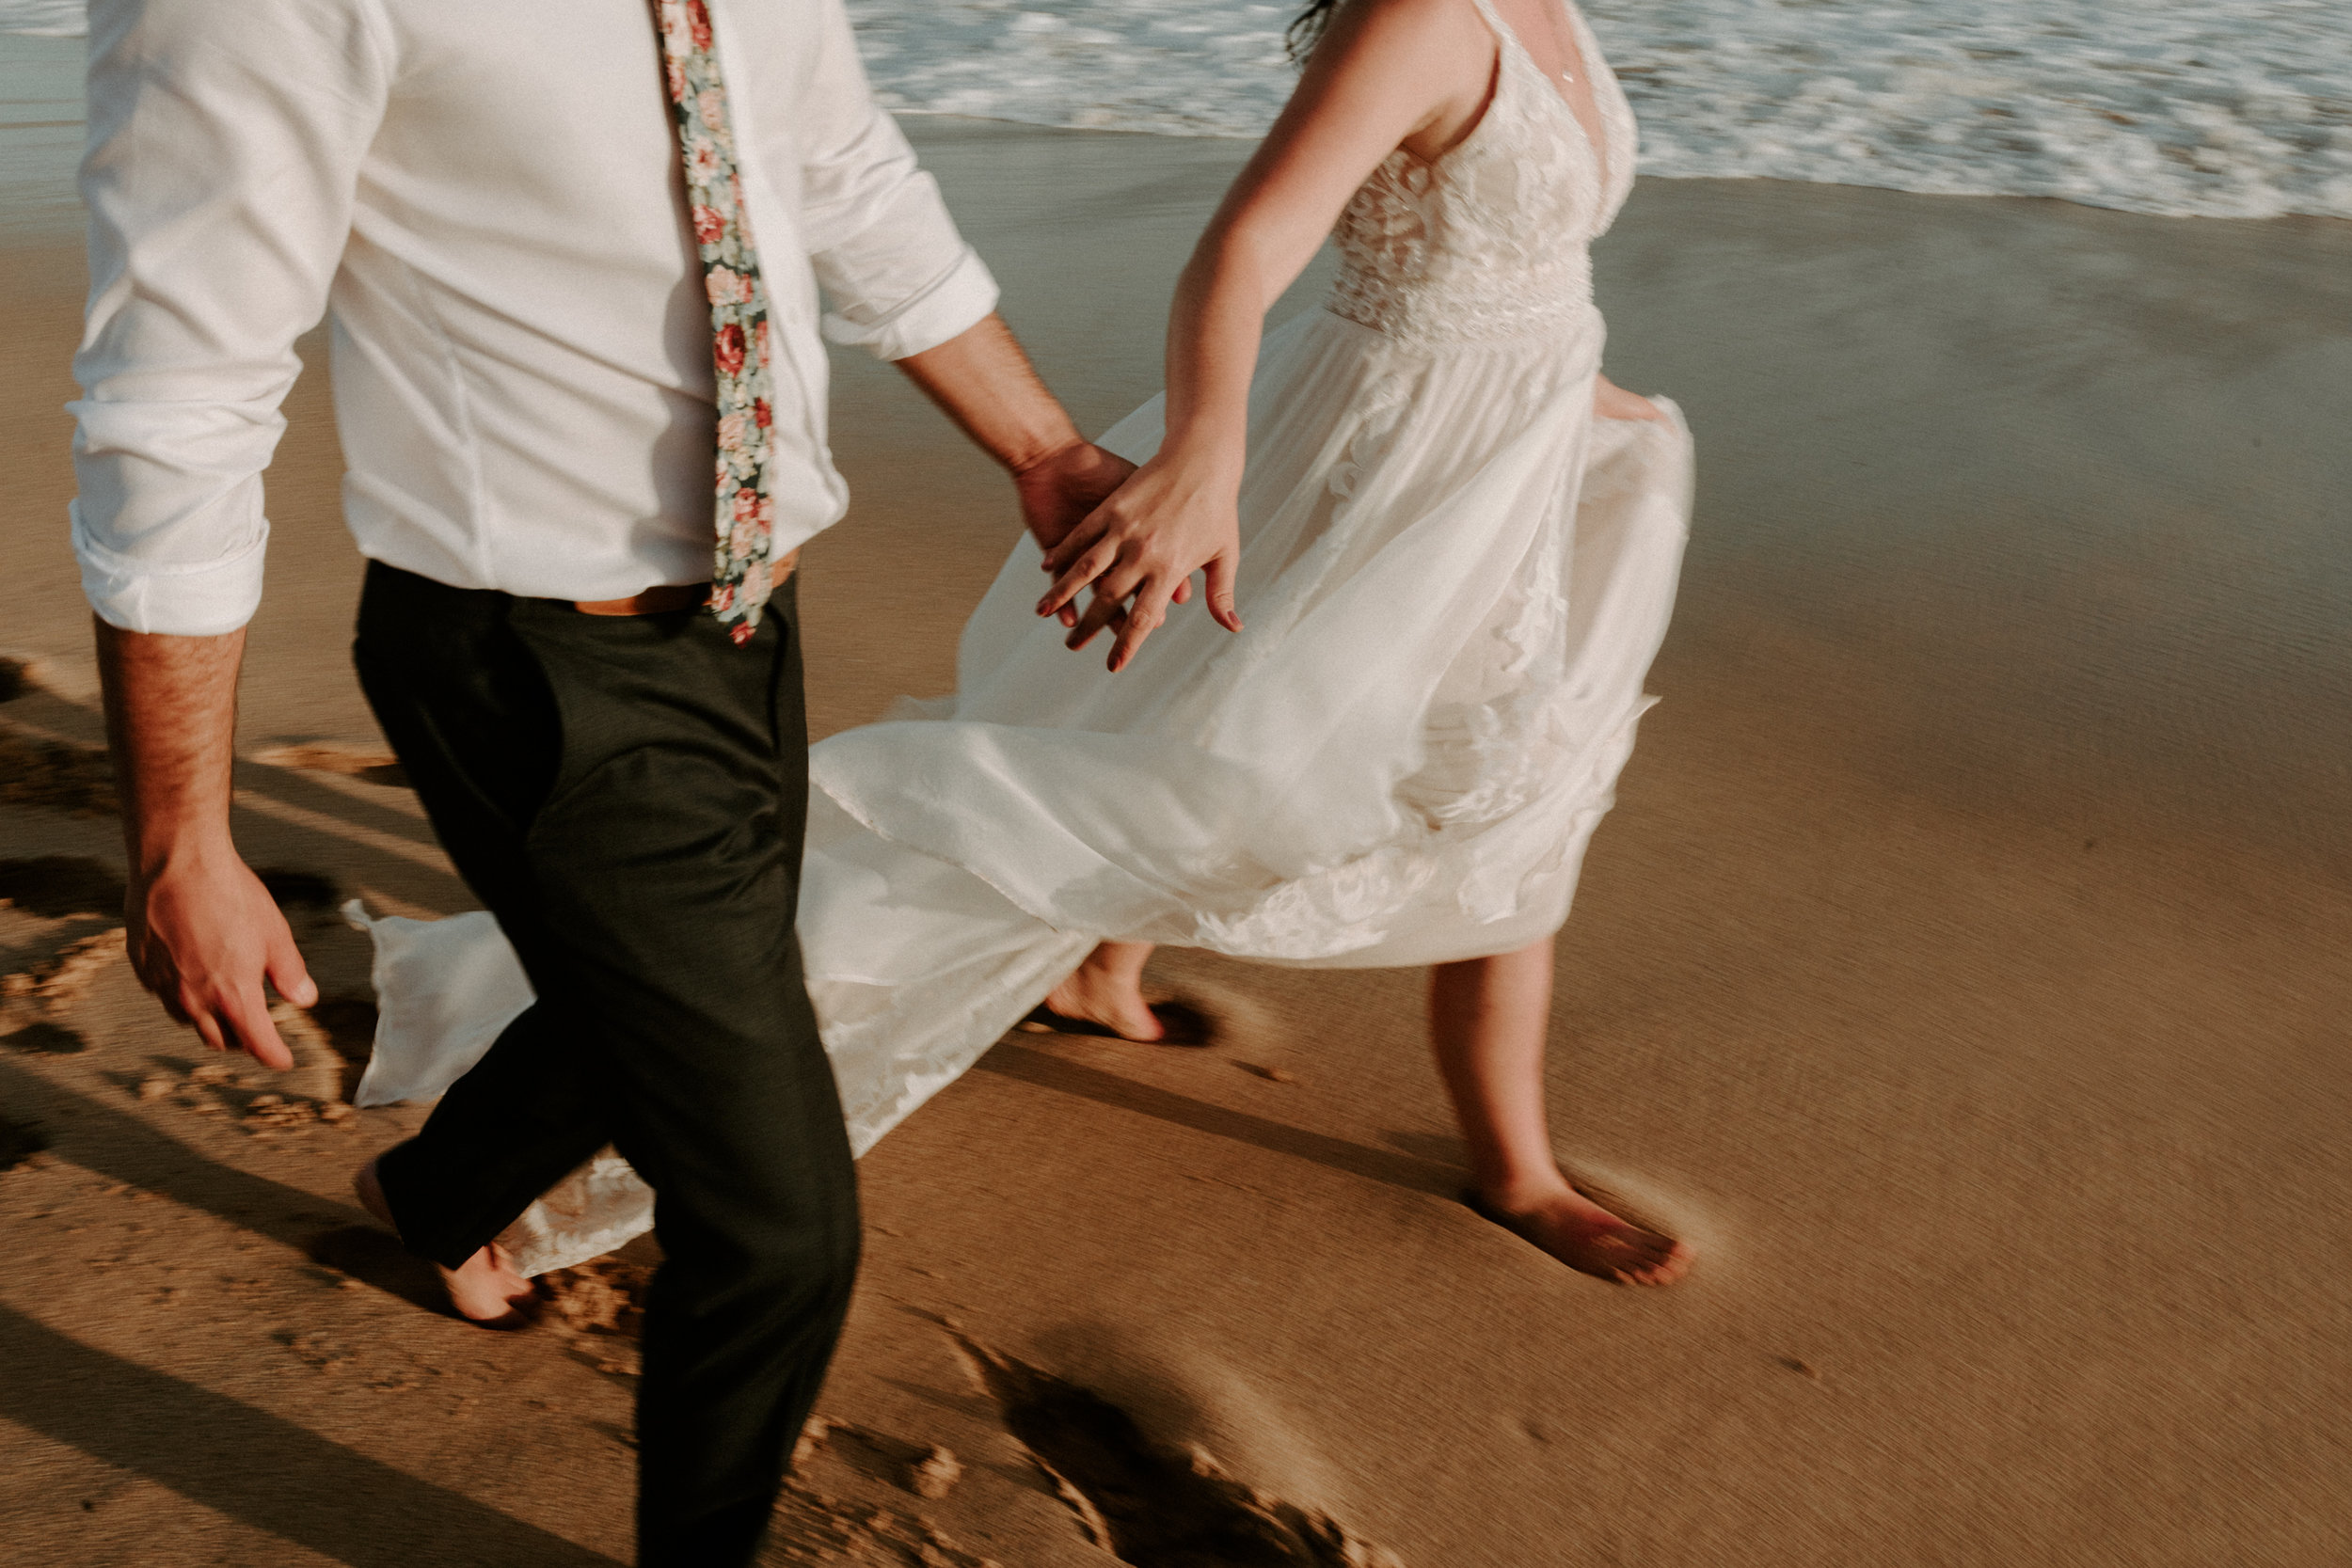 kauai__wedding-1-19.jpg